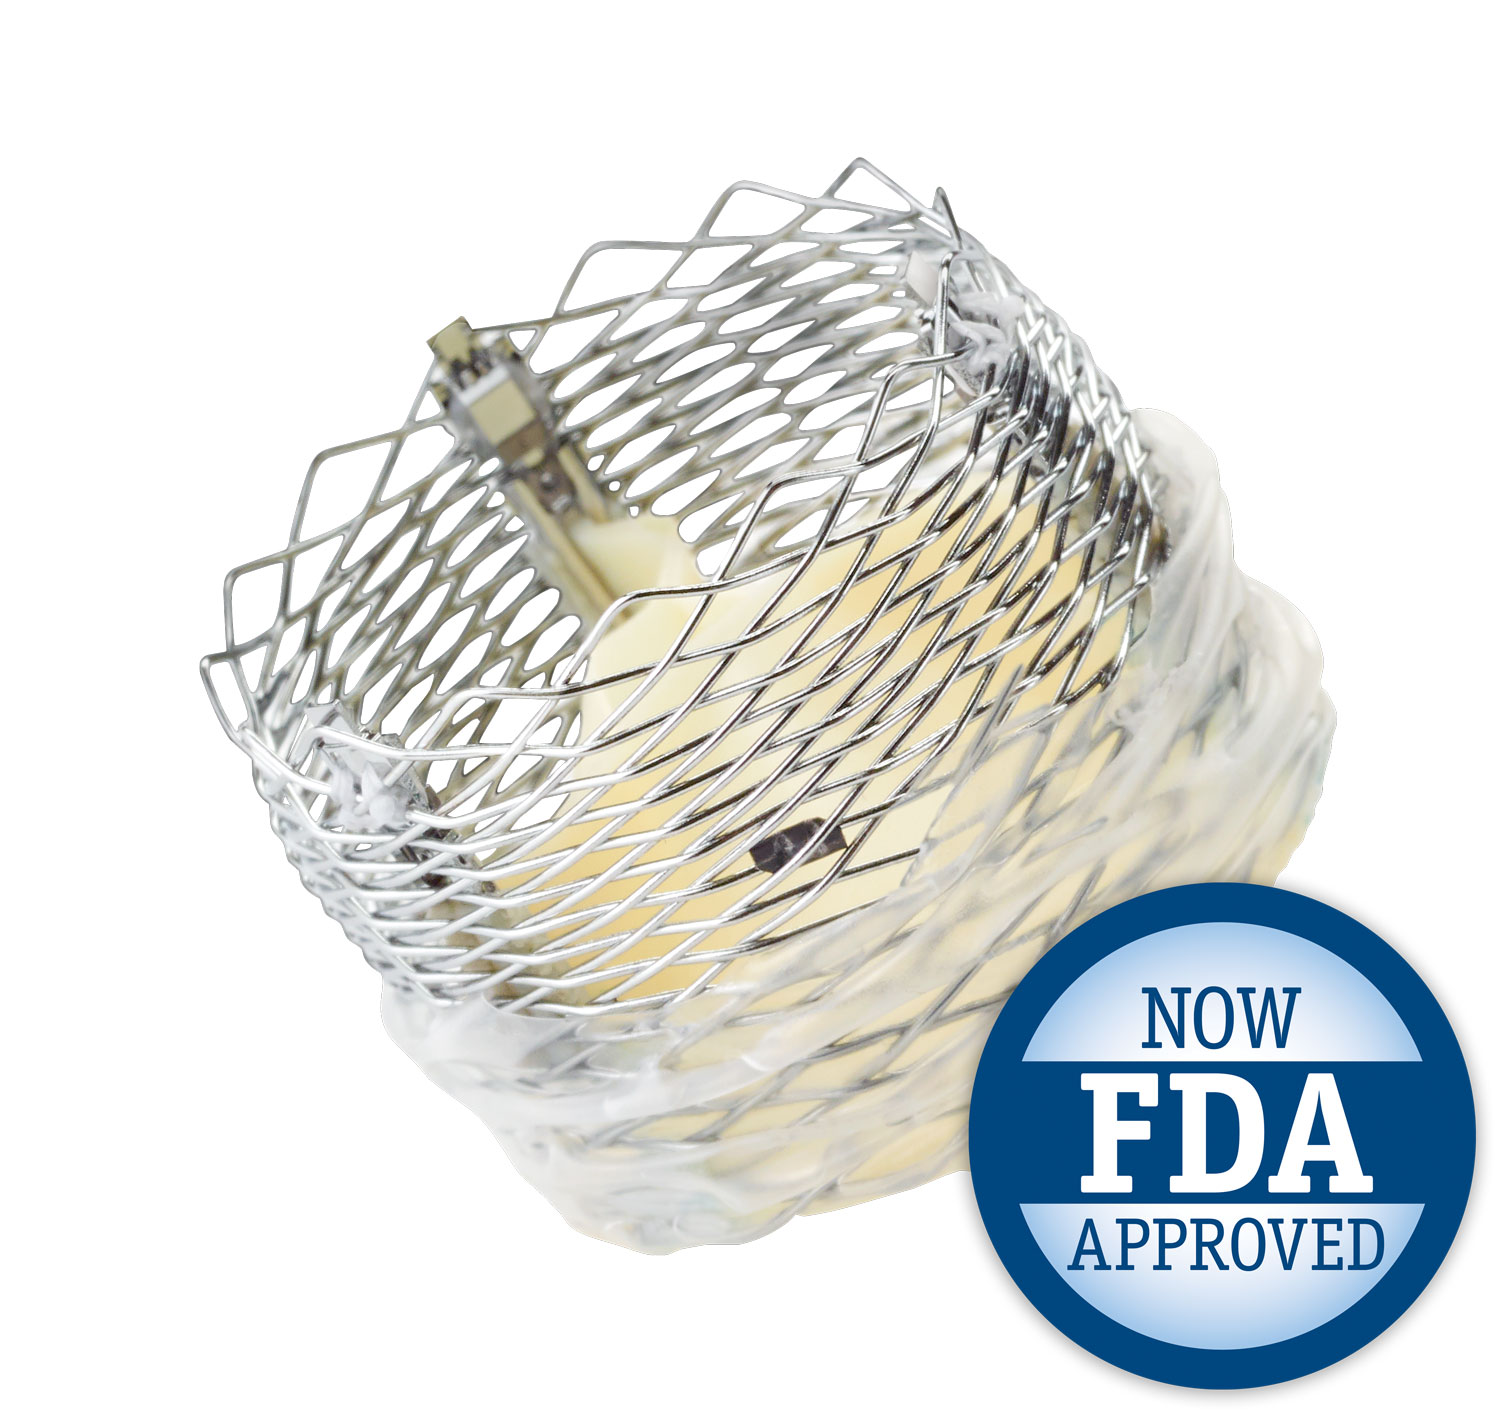 LOTUS Edge has a braided nitinol frame and Adaptive Seal™ Technology that conform to patients' anatomies, virtually eliminating paravalvular leak.